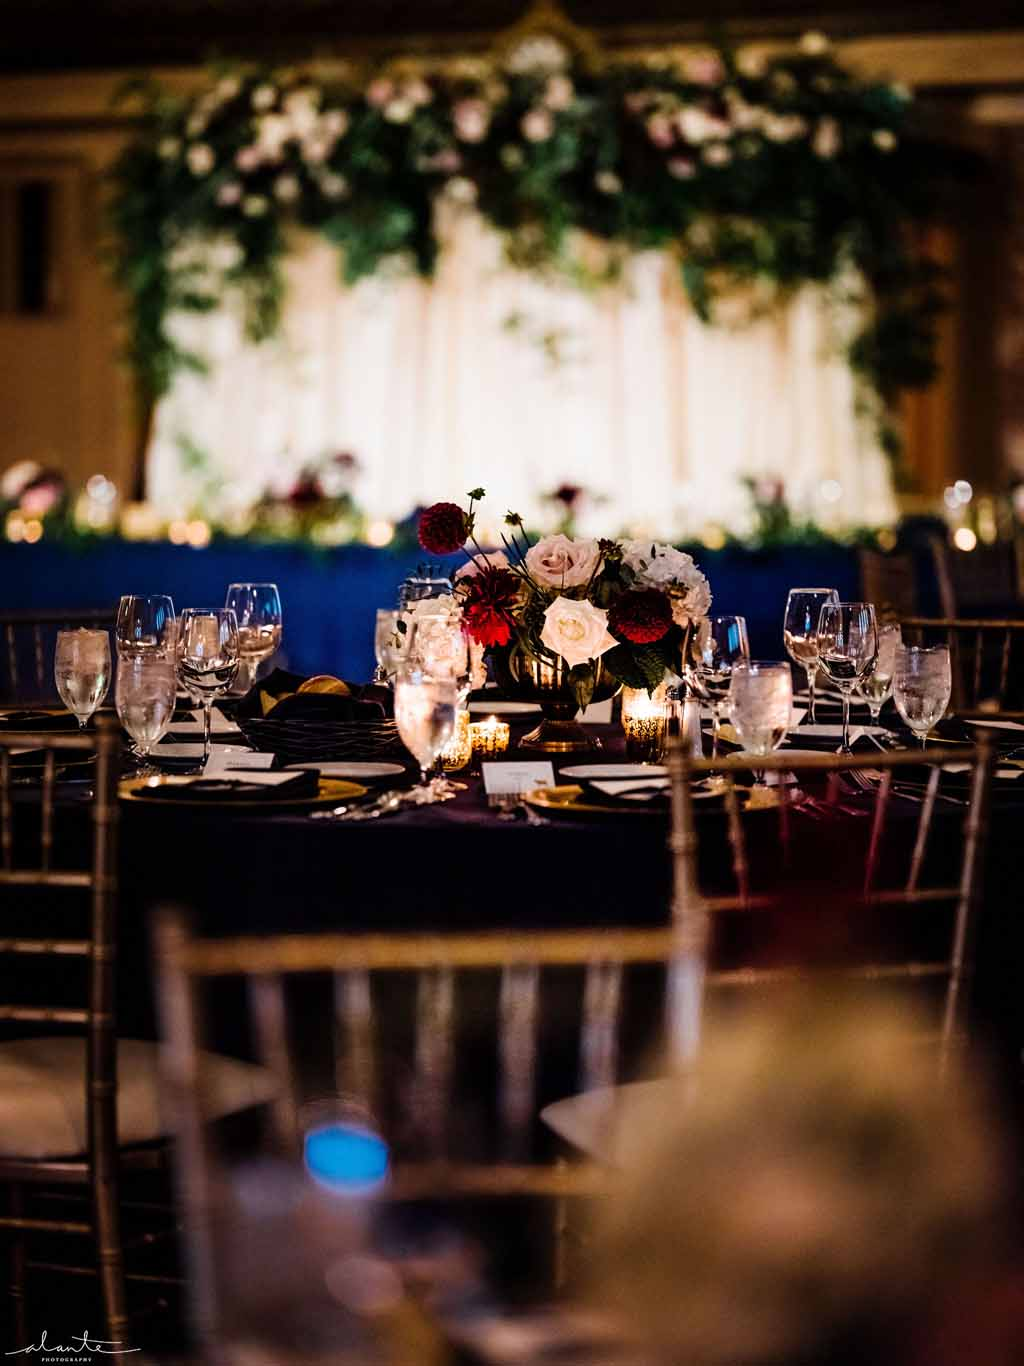 Wedding reception centerpiece in burgundy and navy